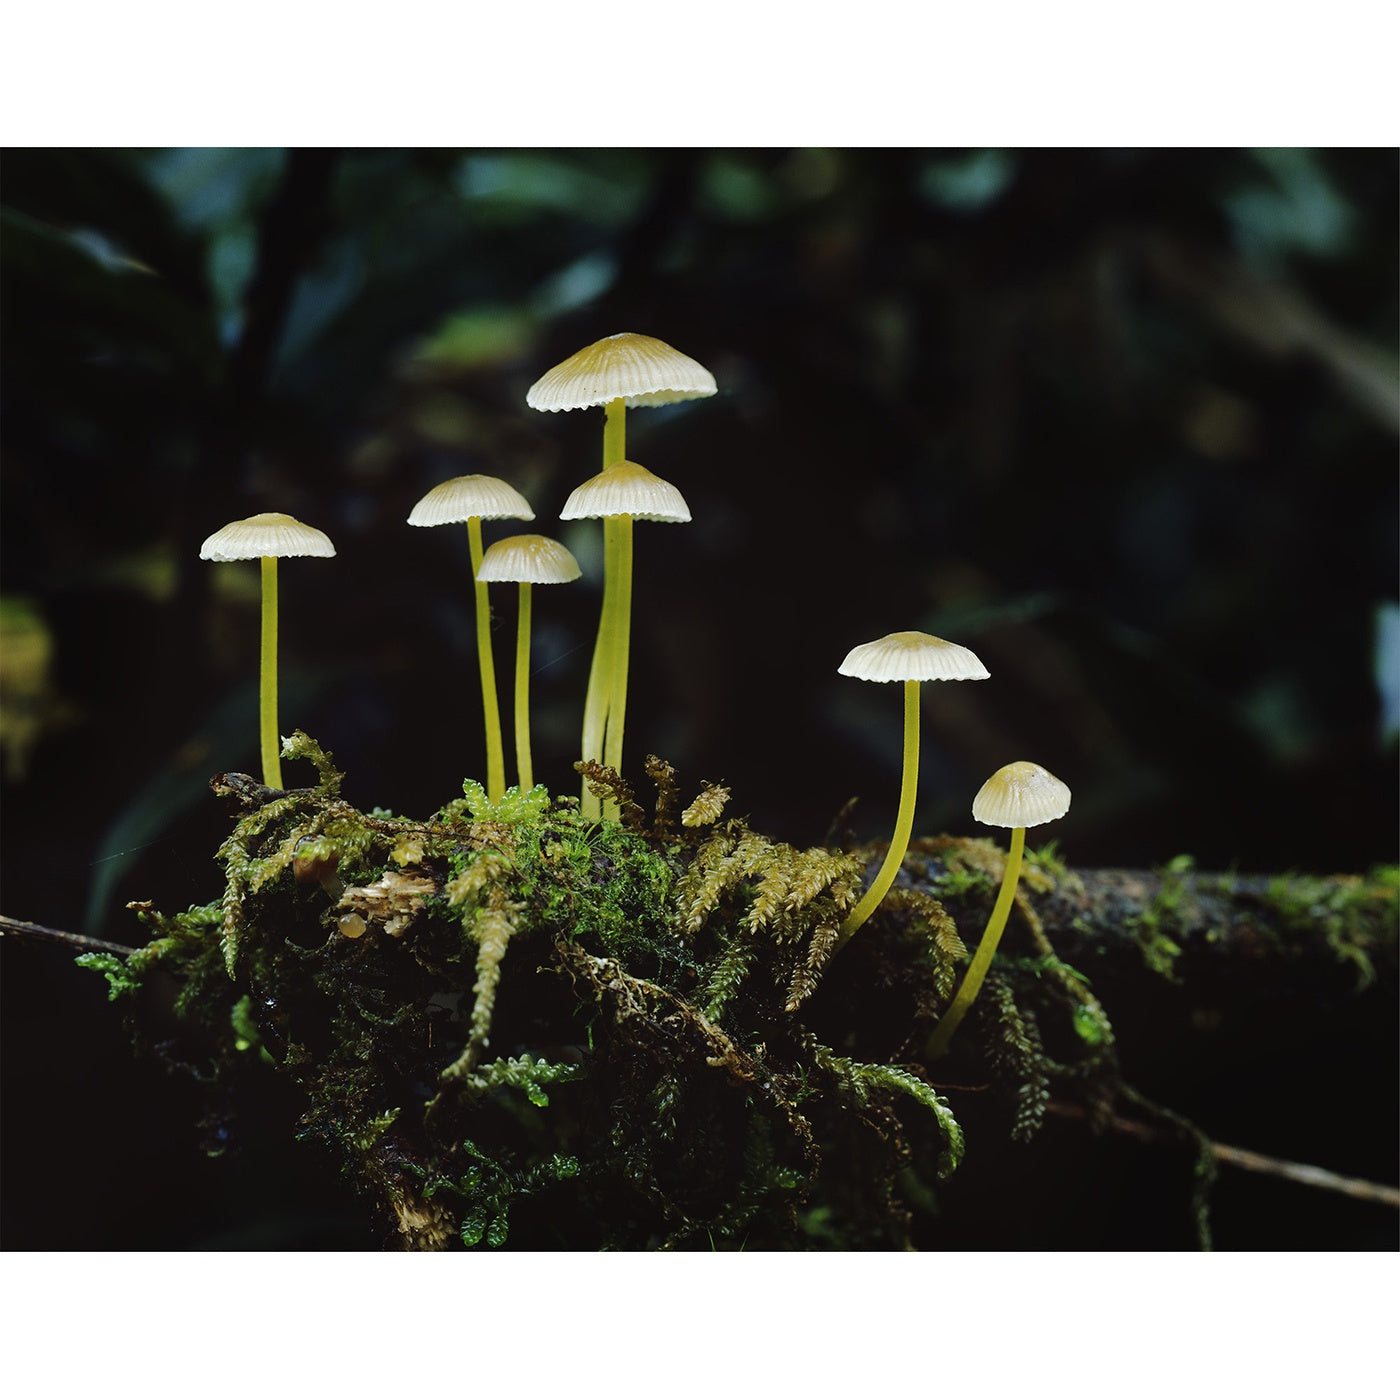 Peter Dombrovskis - Rainforest fungi, Franklin-Gordon Wild Rivers National Park